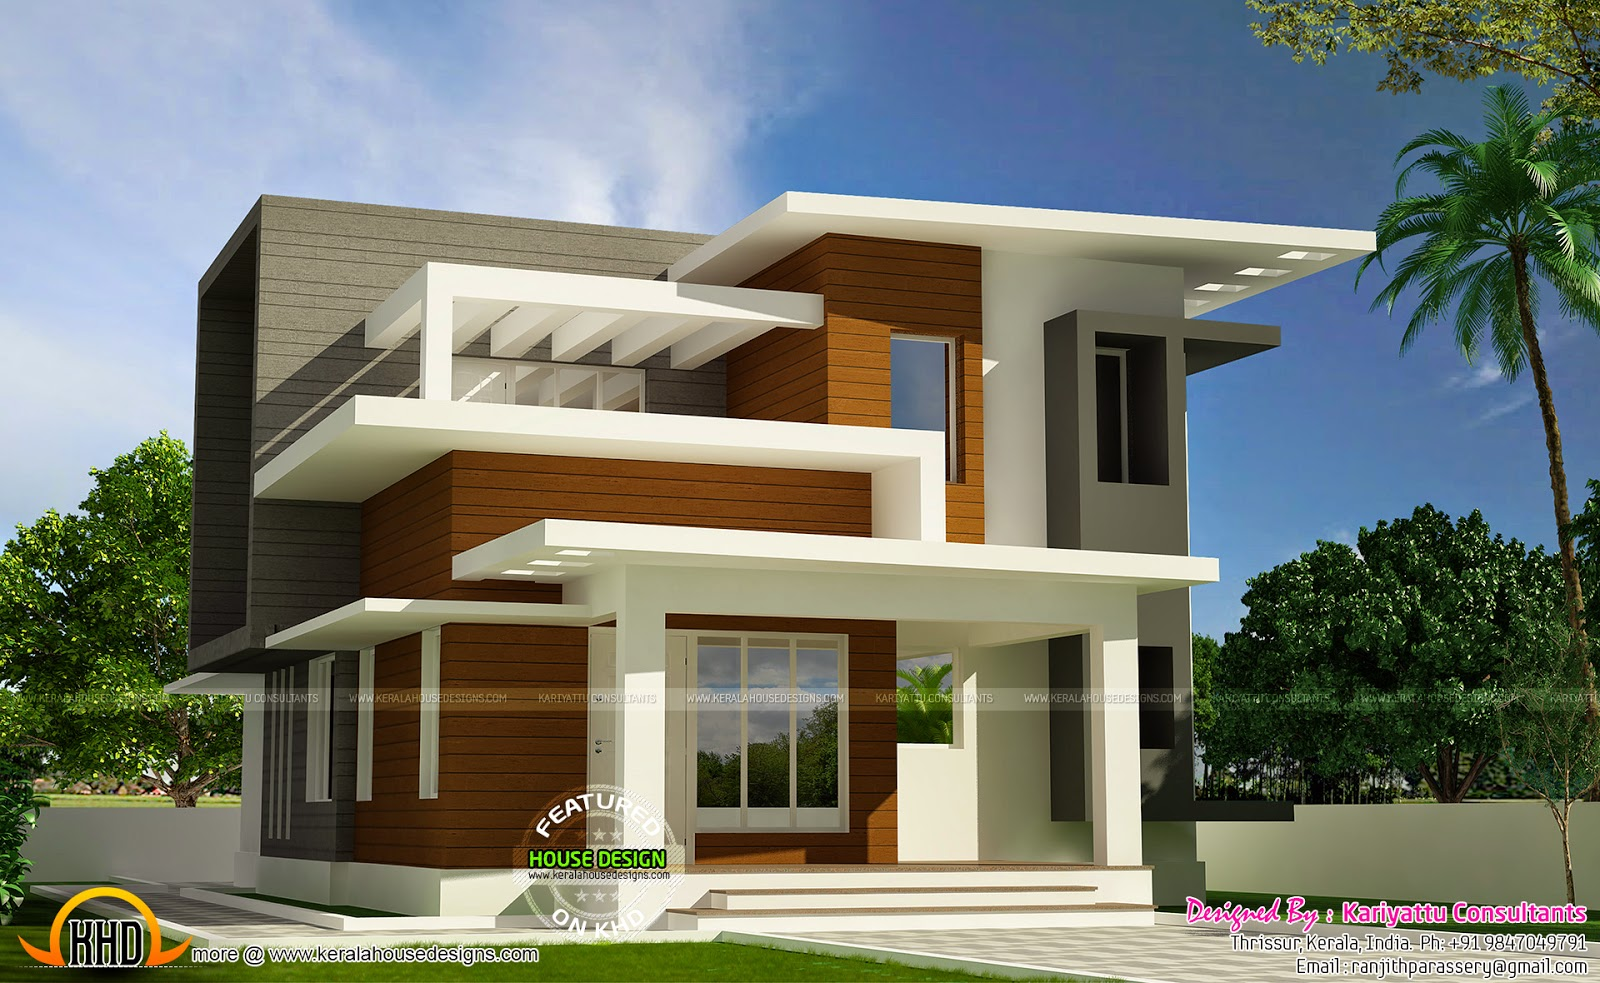 Home Design Kerala unusual home design House 4 Bedroom House Plans In India Images Duplex